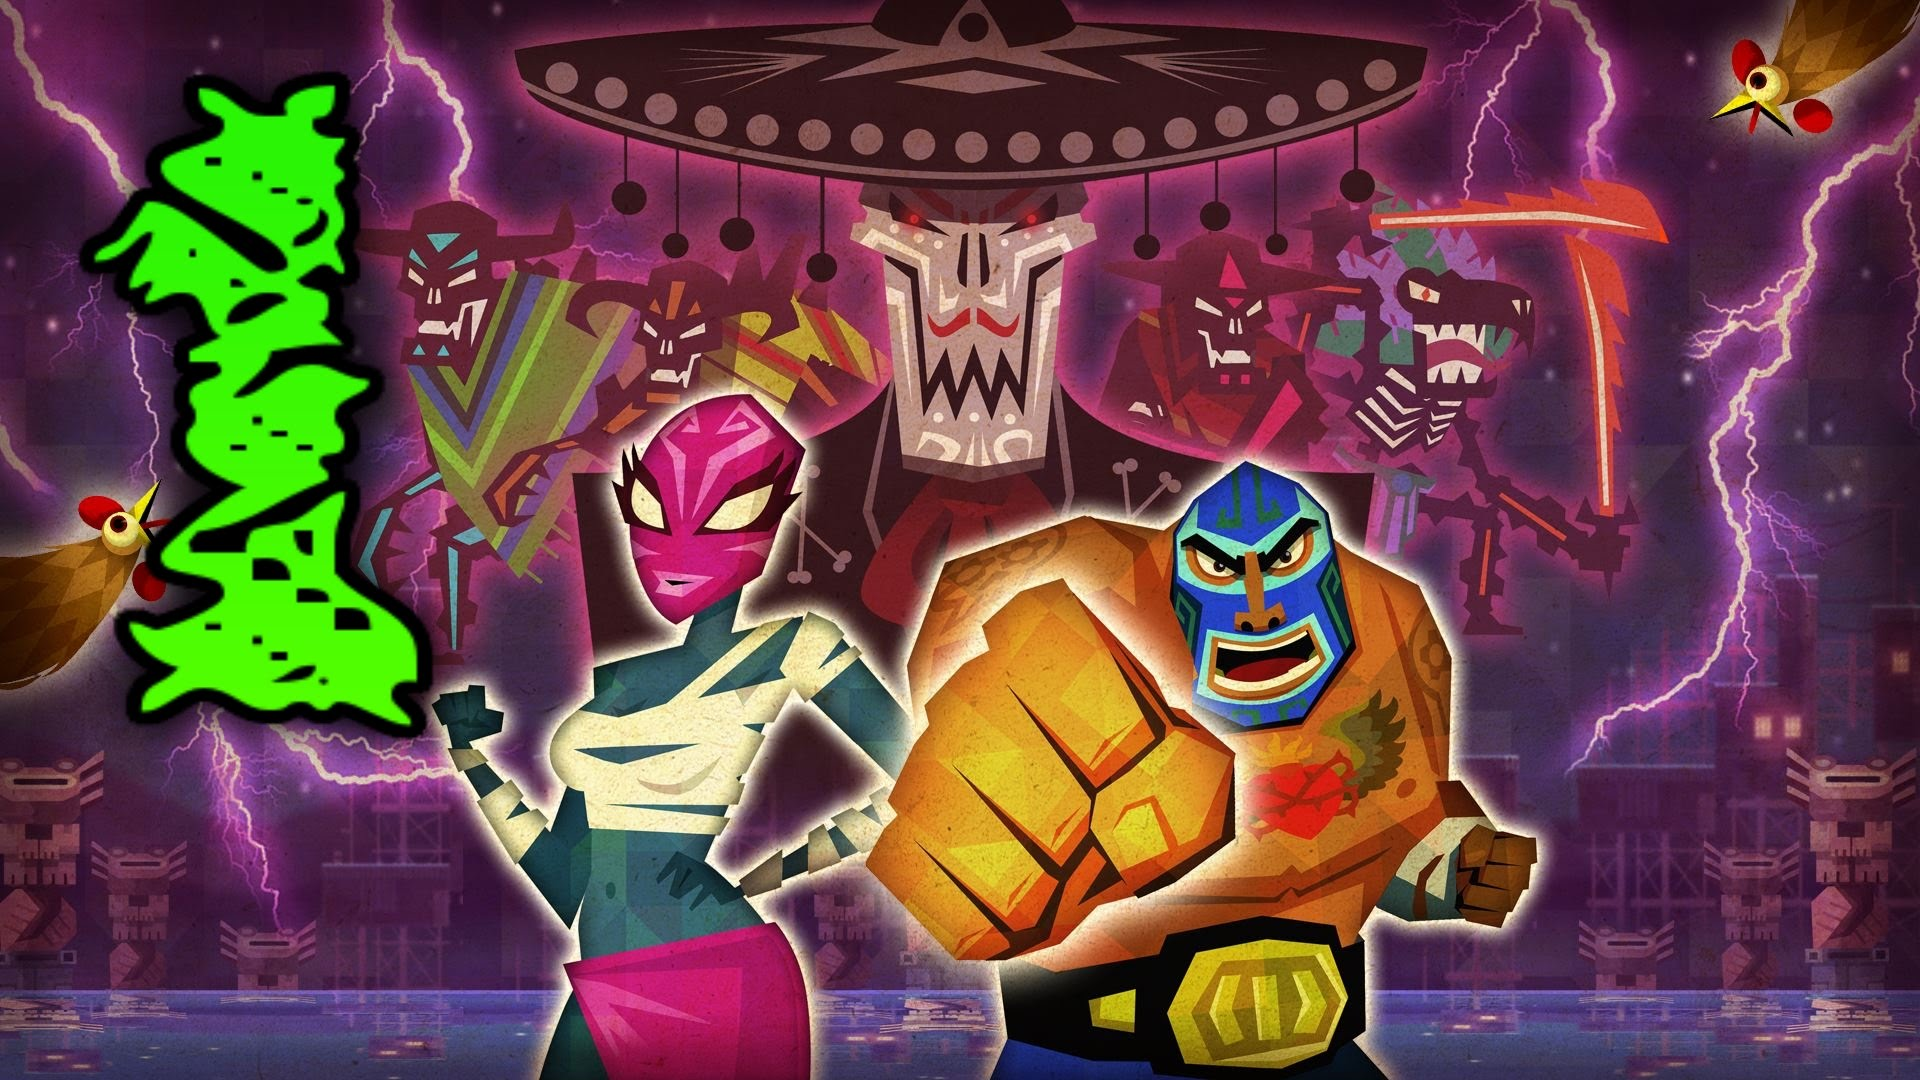 Guacamelee HD Wallpapers and Background Images   stmednet 1920x1080